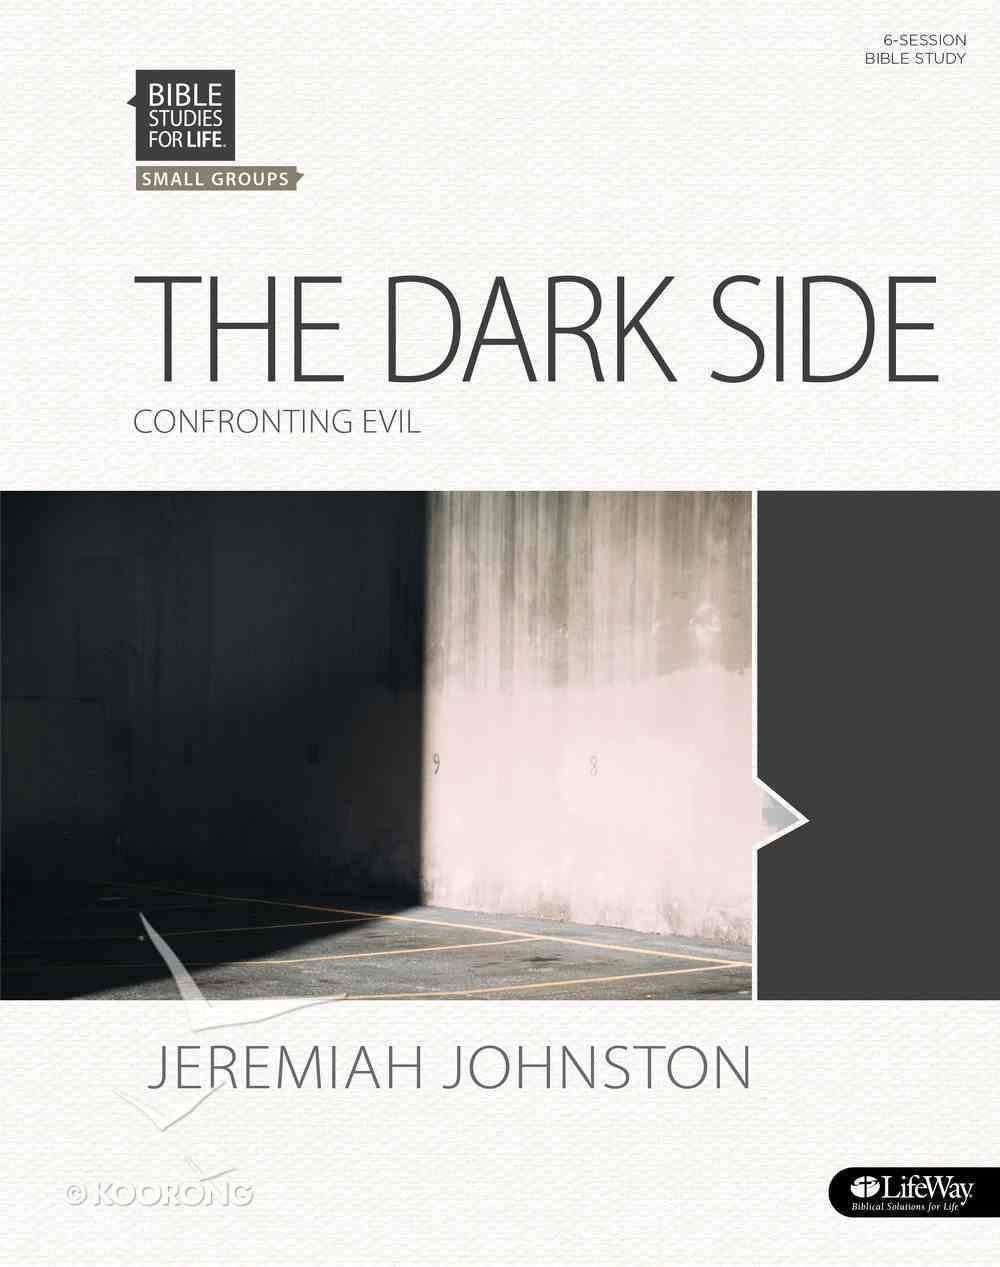 Dark Side, the Confronting Evil (Member Book) (Bible Studies For Life Series) Paperback